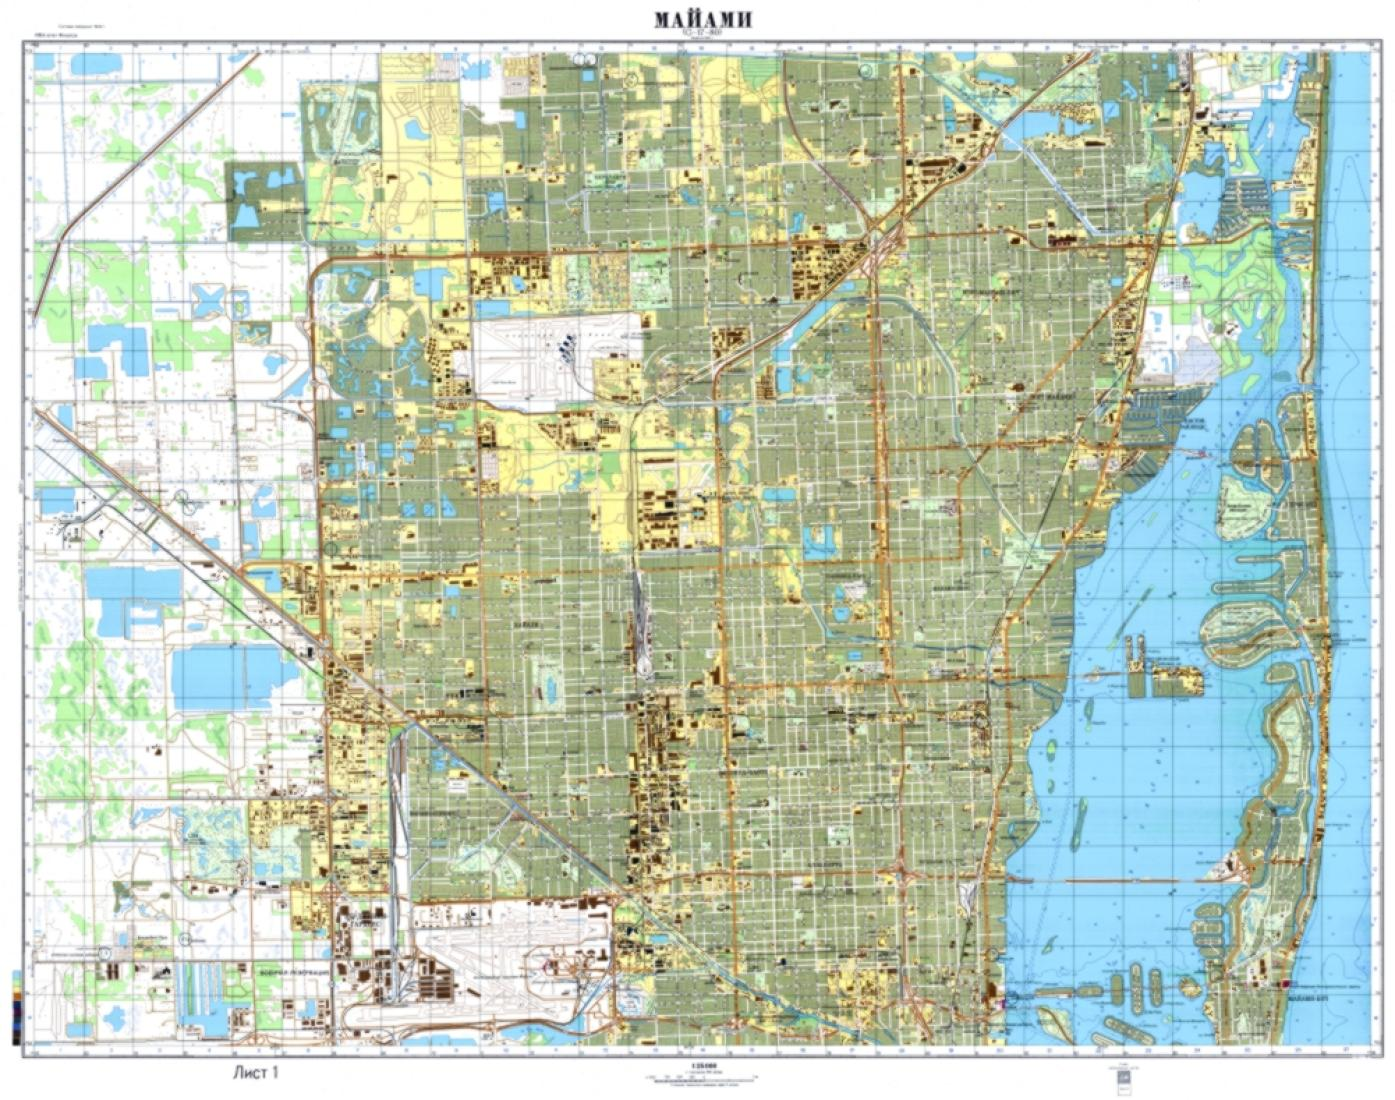 Miami Florida Map.Miami Florida Cold War Map Sheet 1 Of 2 By Ussr Ministry Of Defense